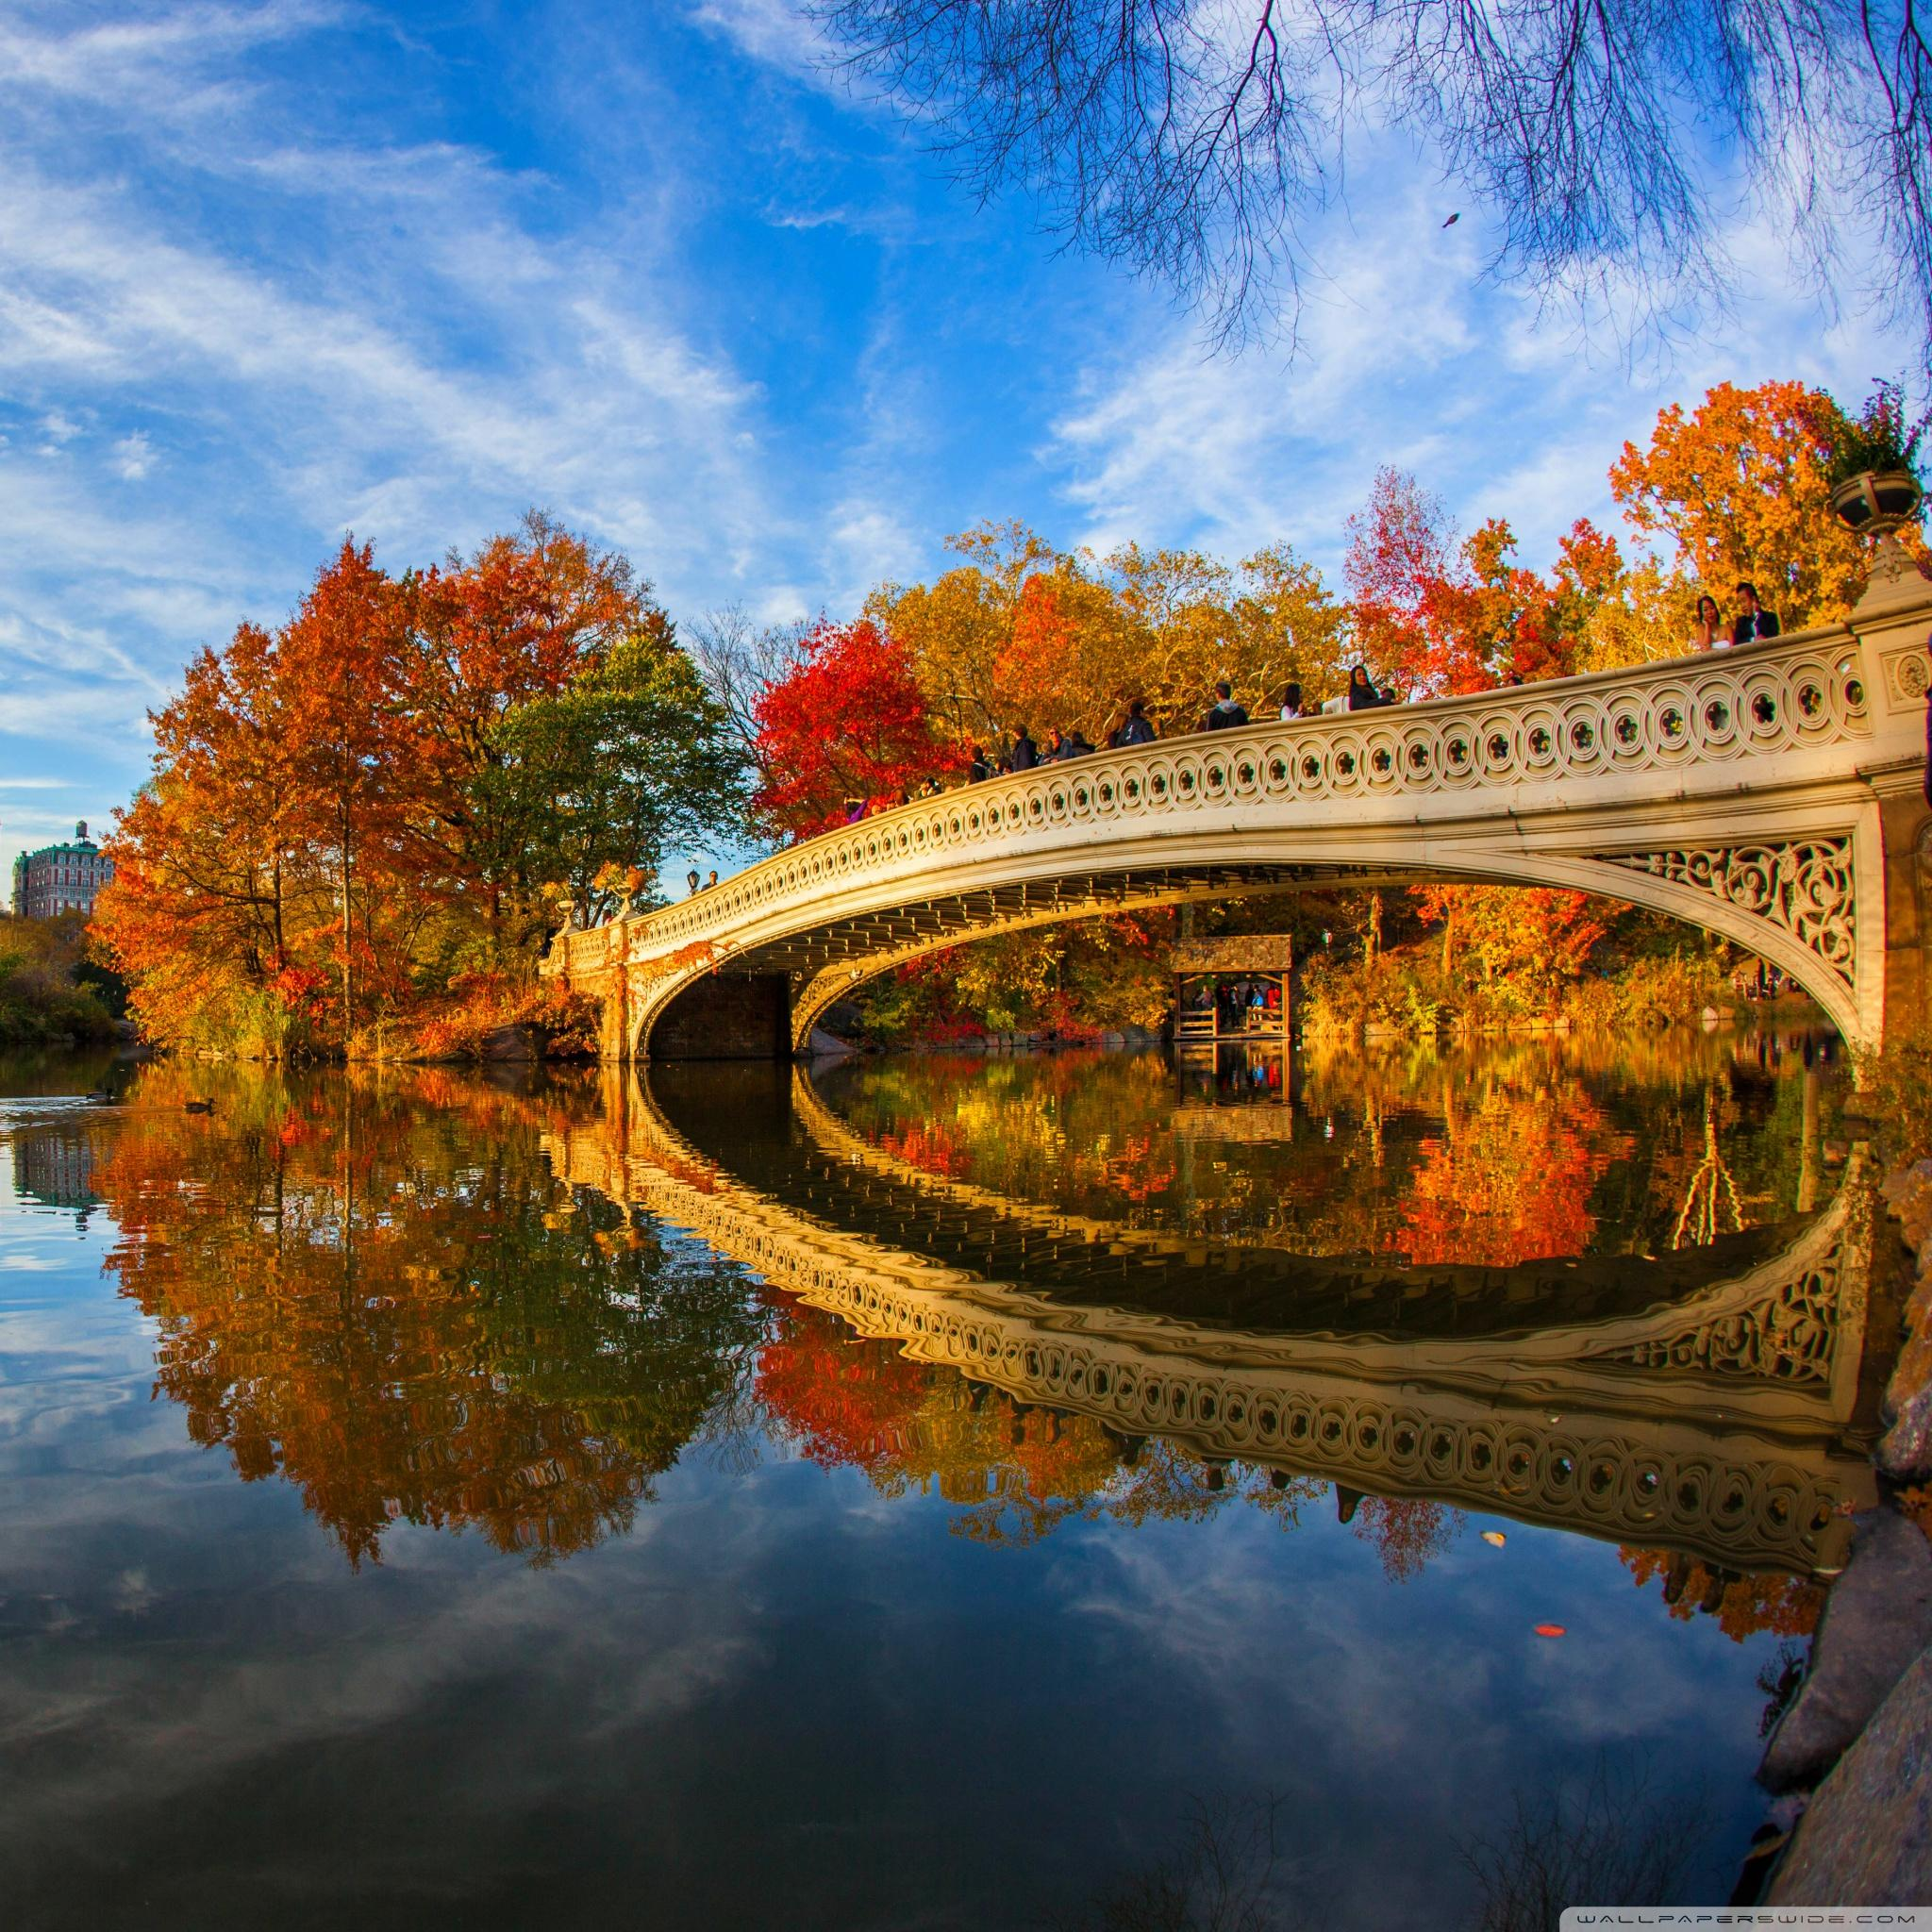 Fall Ipad Wallpaper 53 Image Collections New York Central Park 2048x2048 Download Hd Wallpaper Wallpapertip